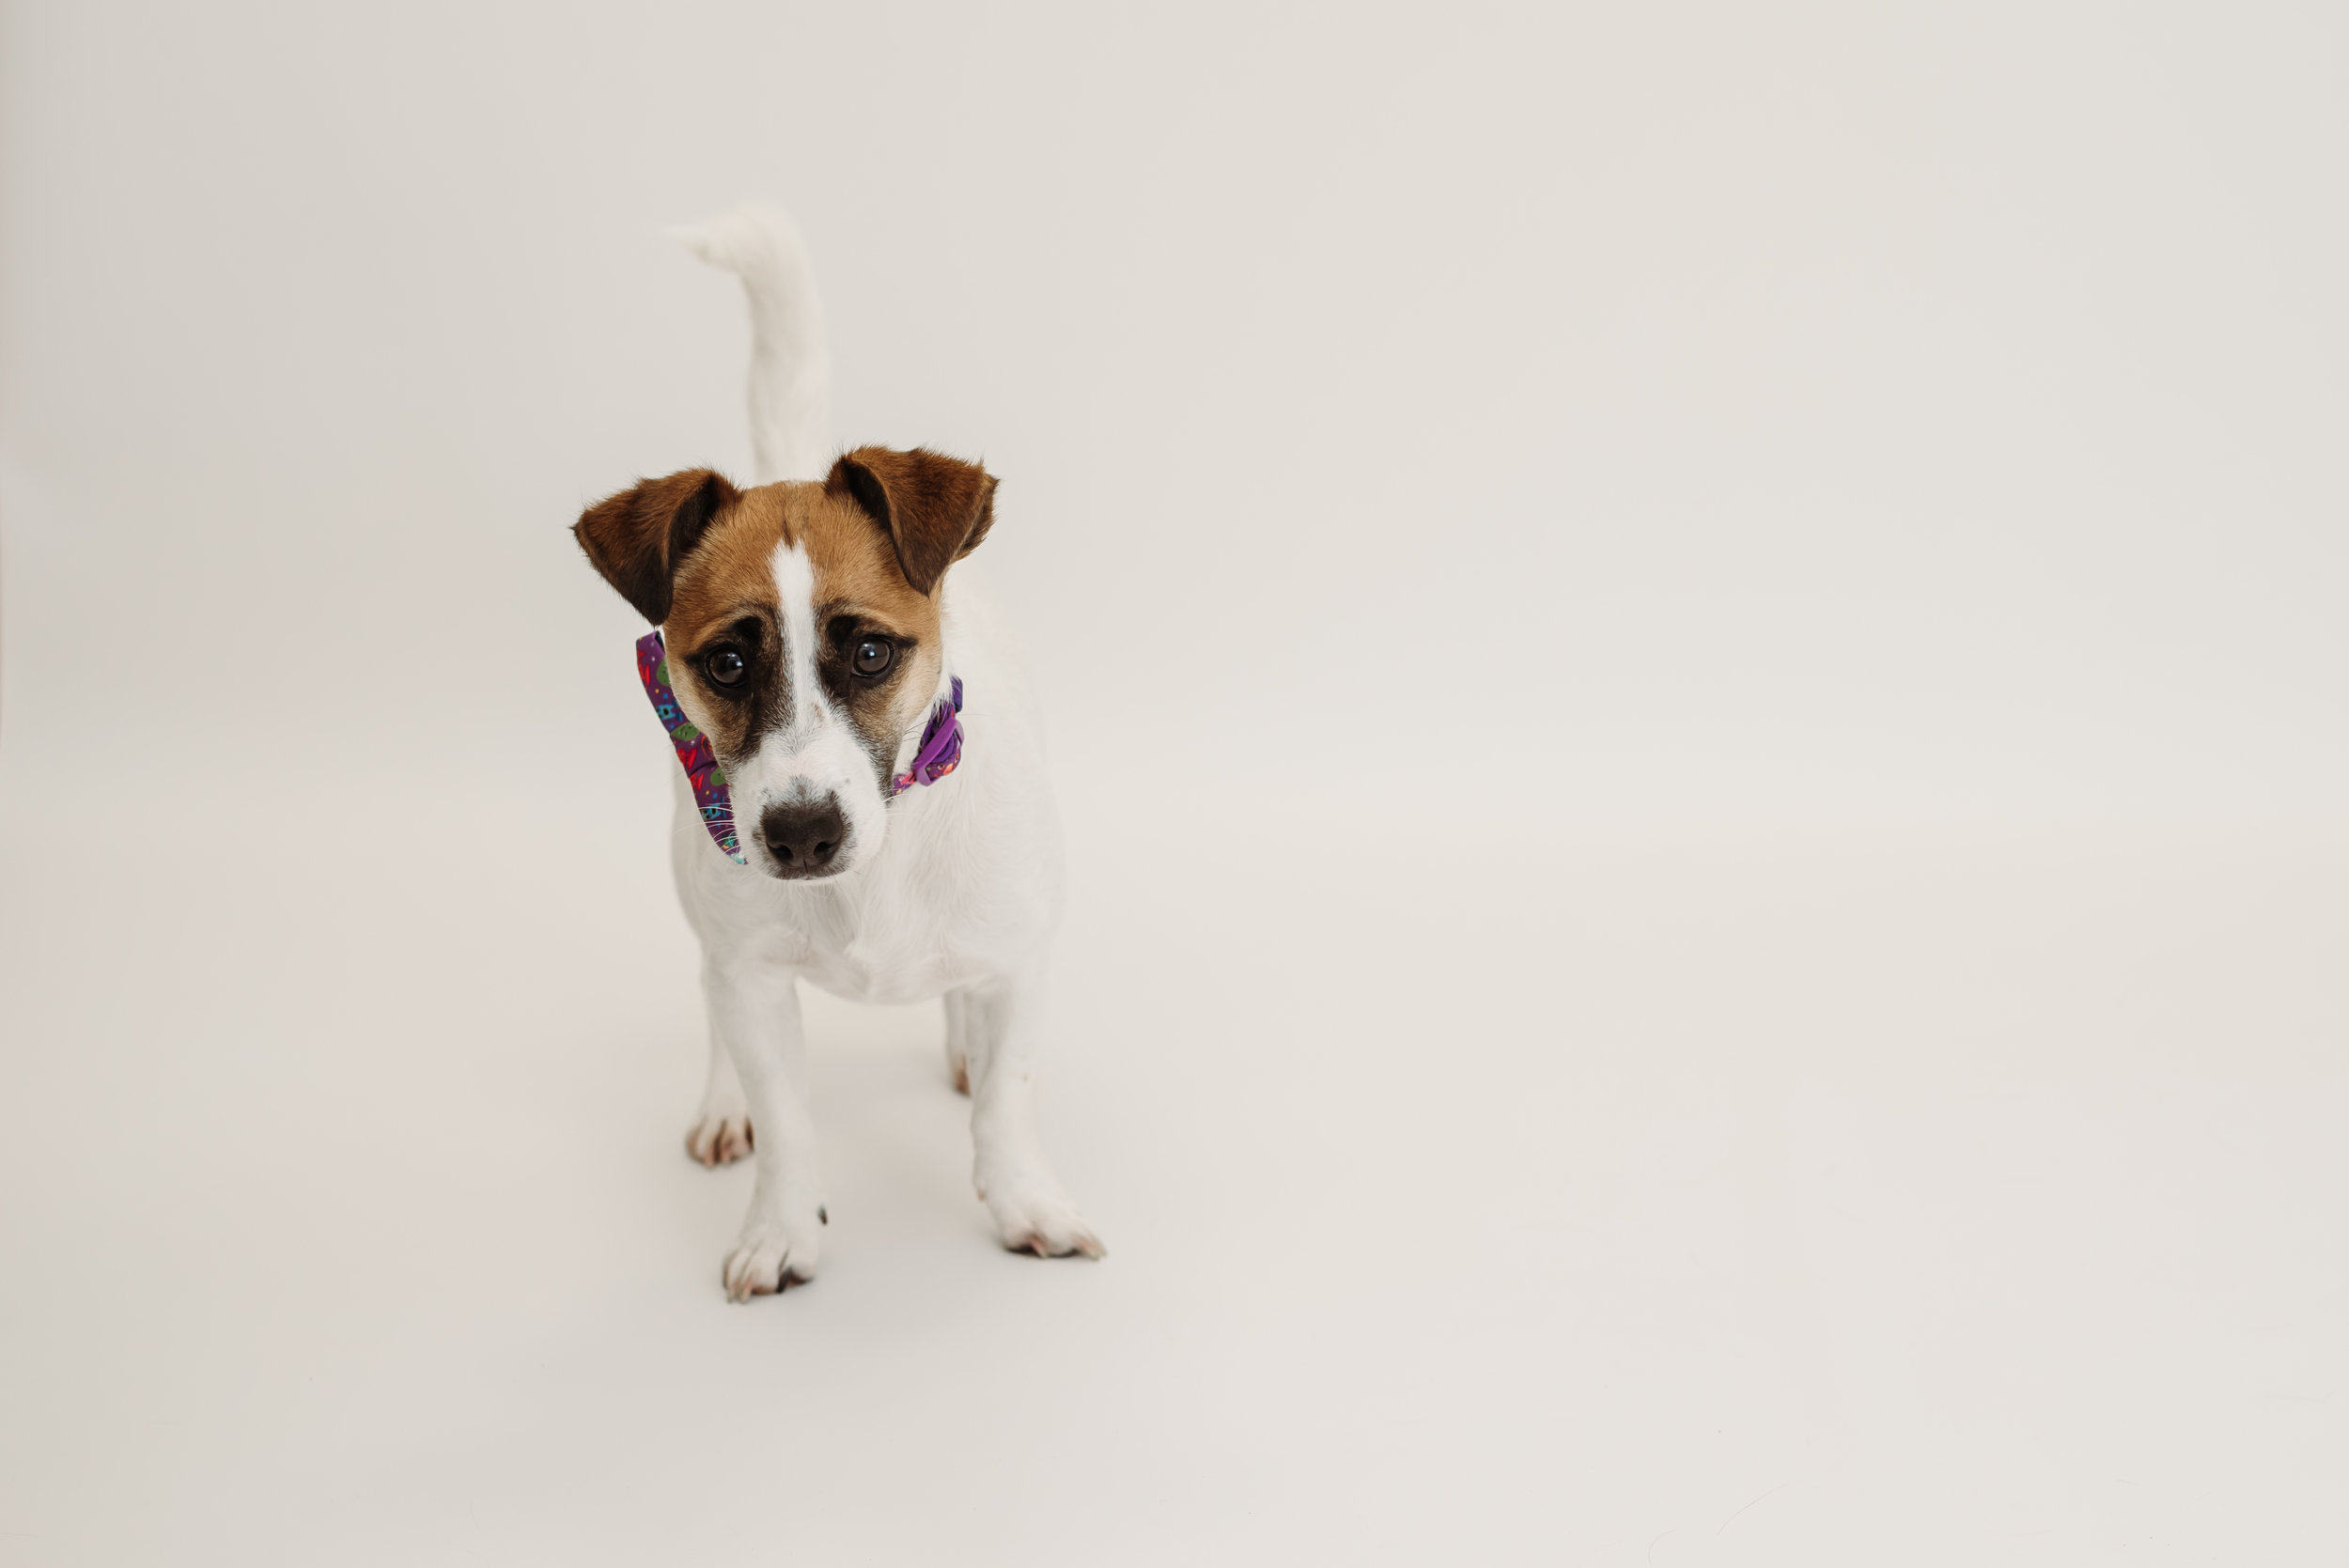 Jack Russel Terrier photo shoot - Great Harwood